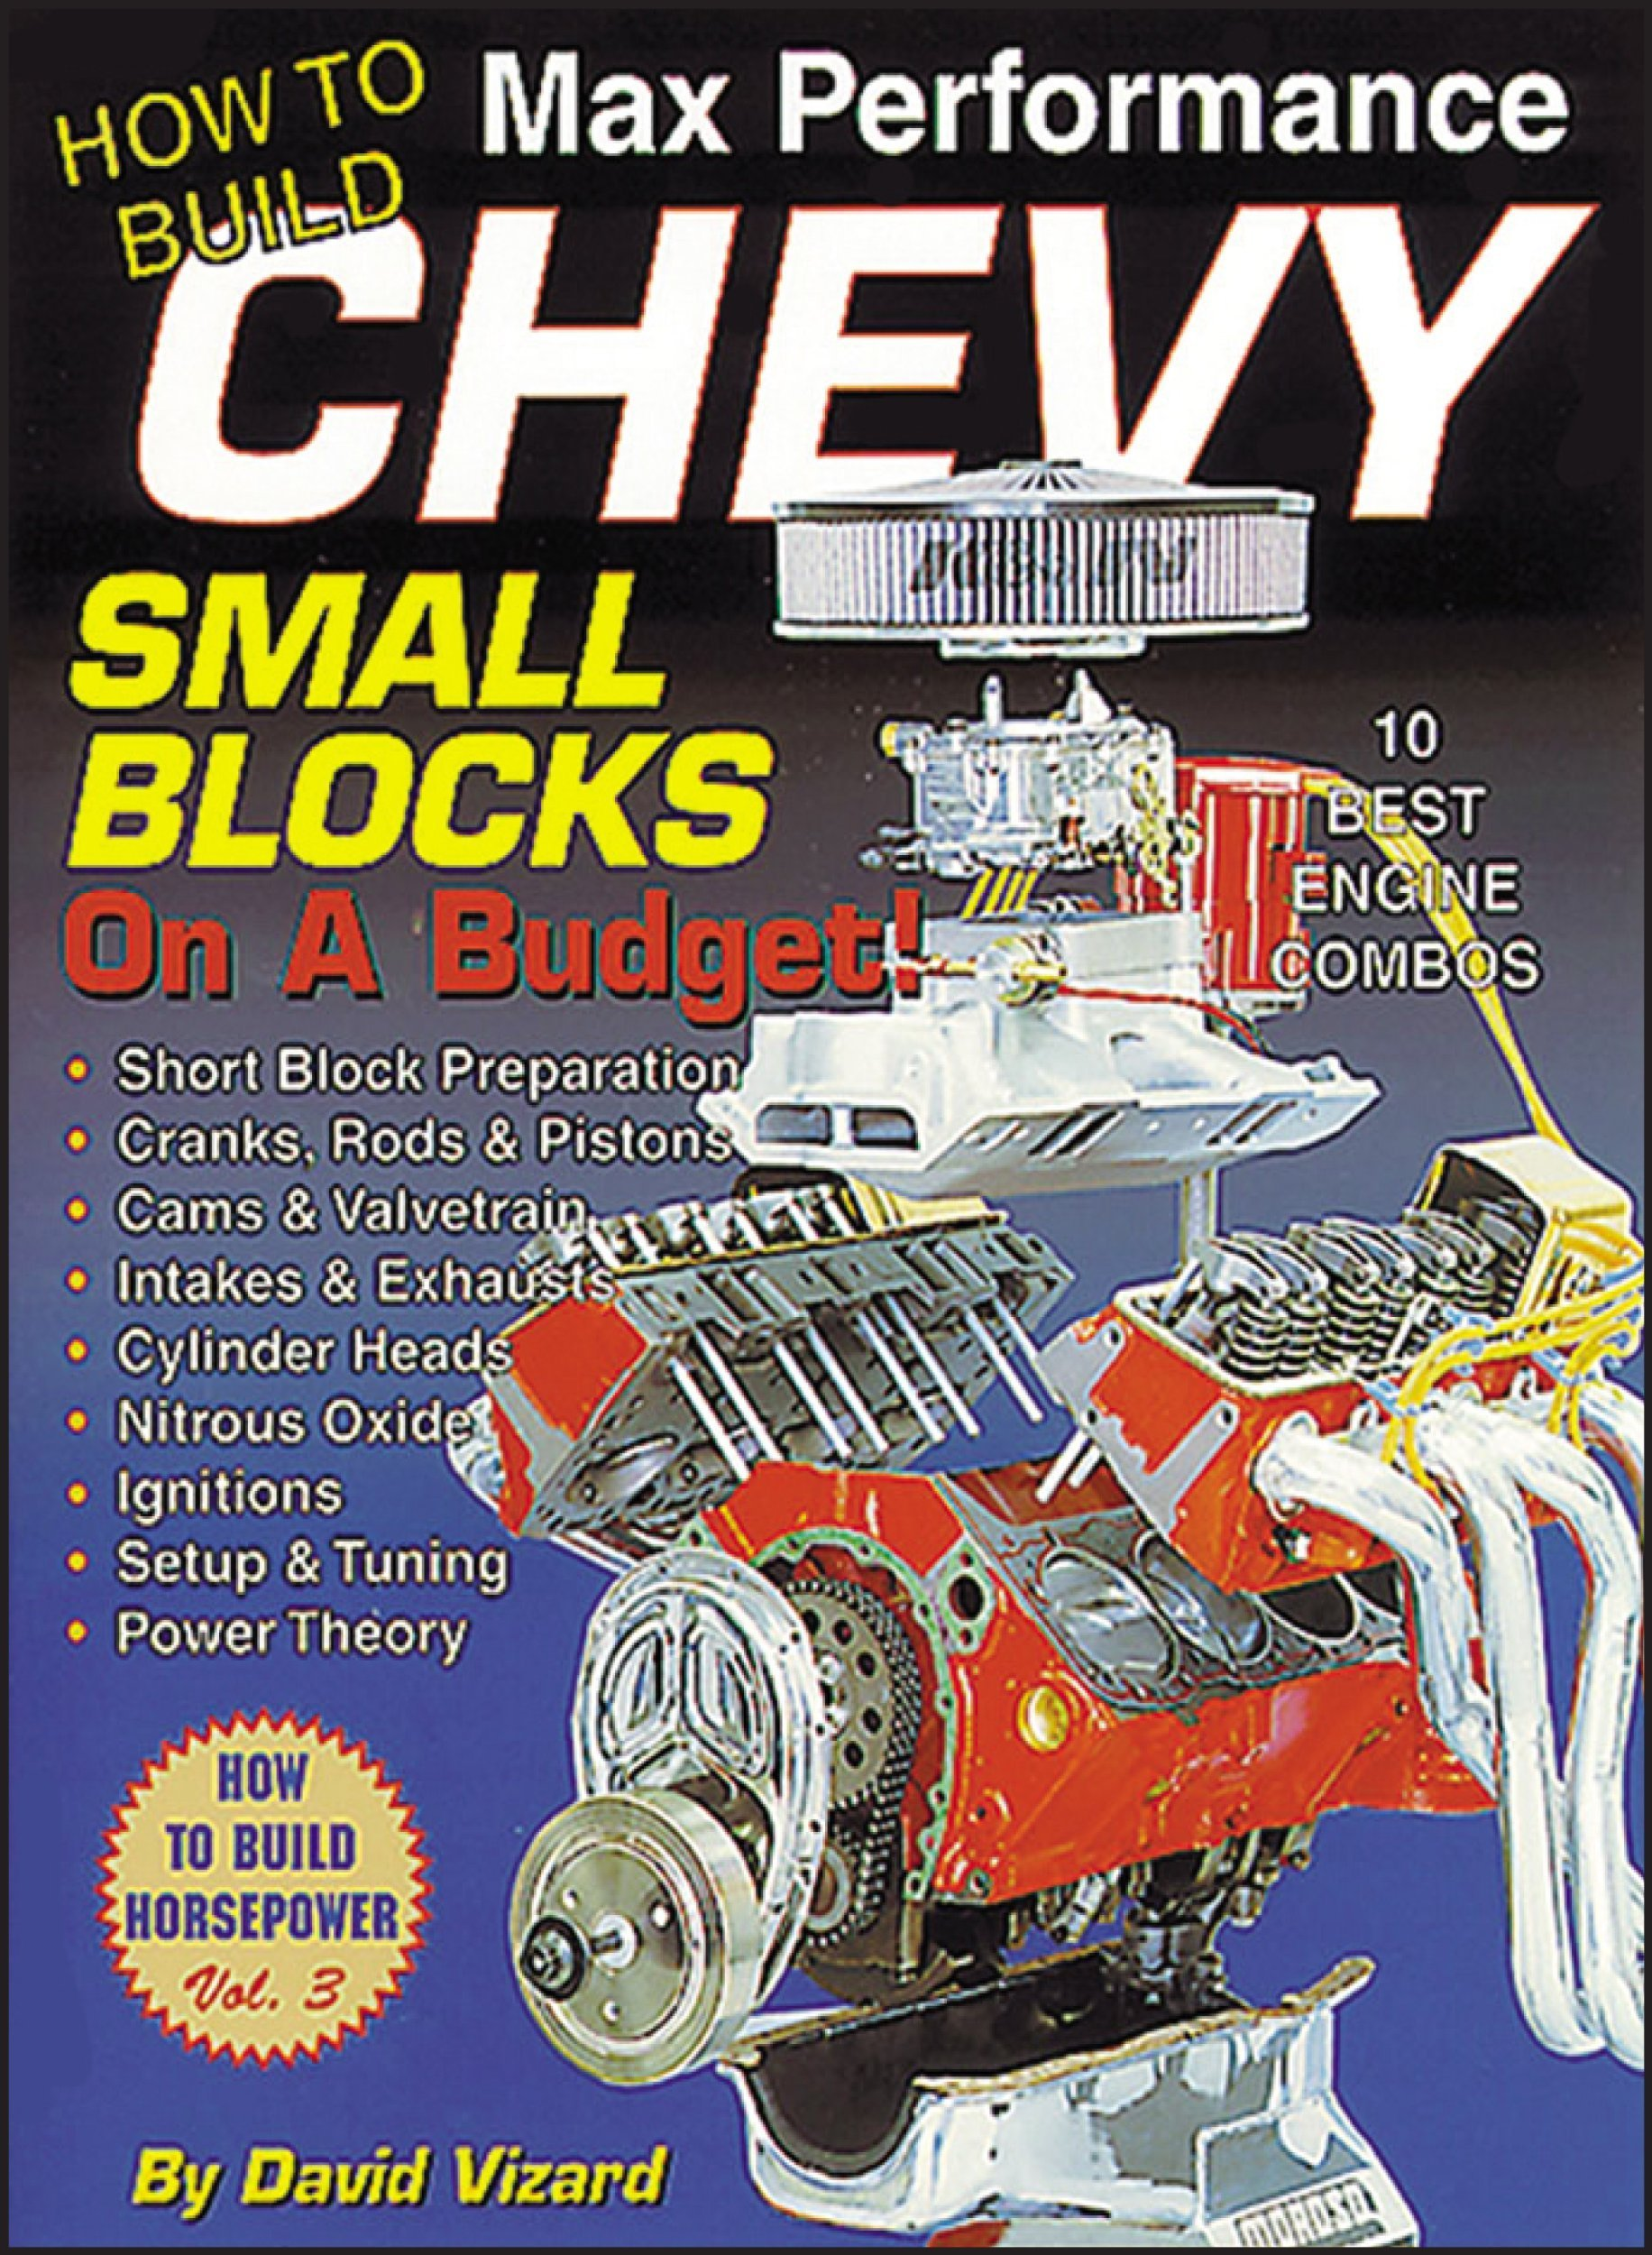 How to Build Max Performance Chevy Small Blocks on a Budget